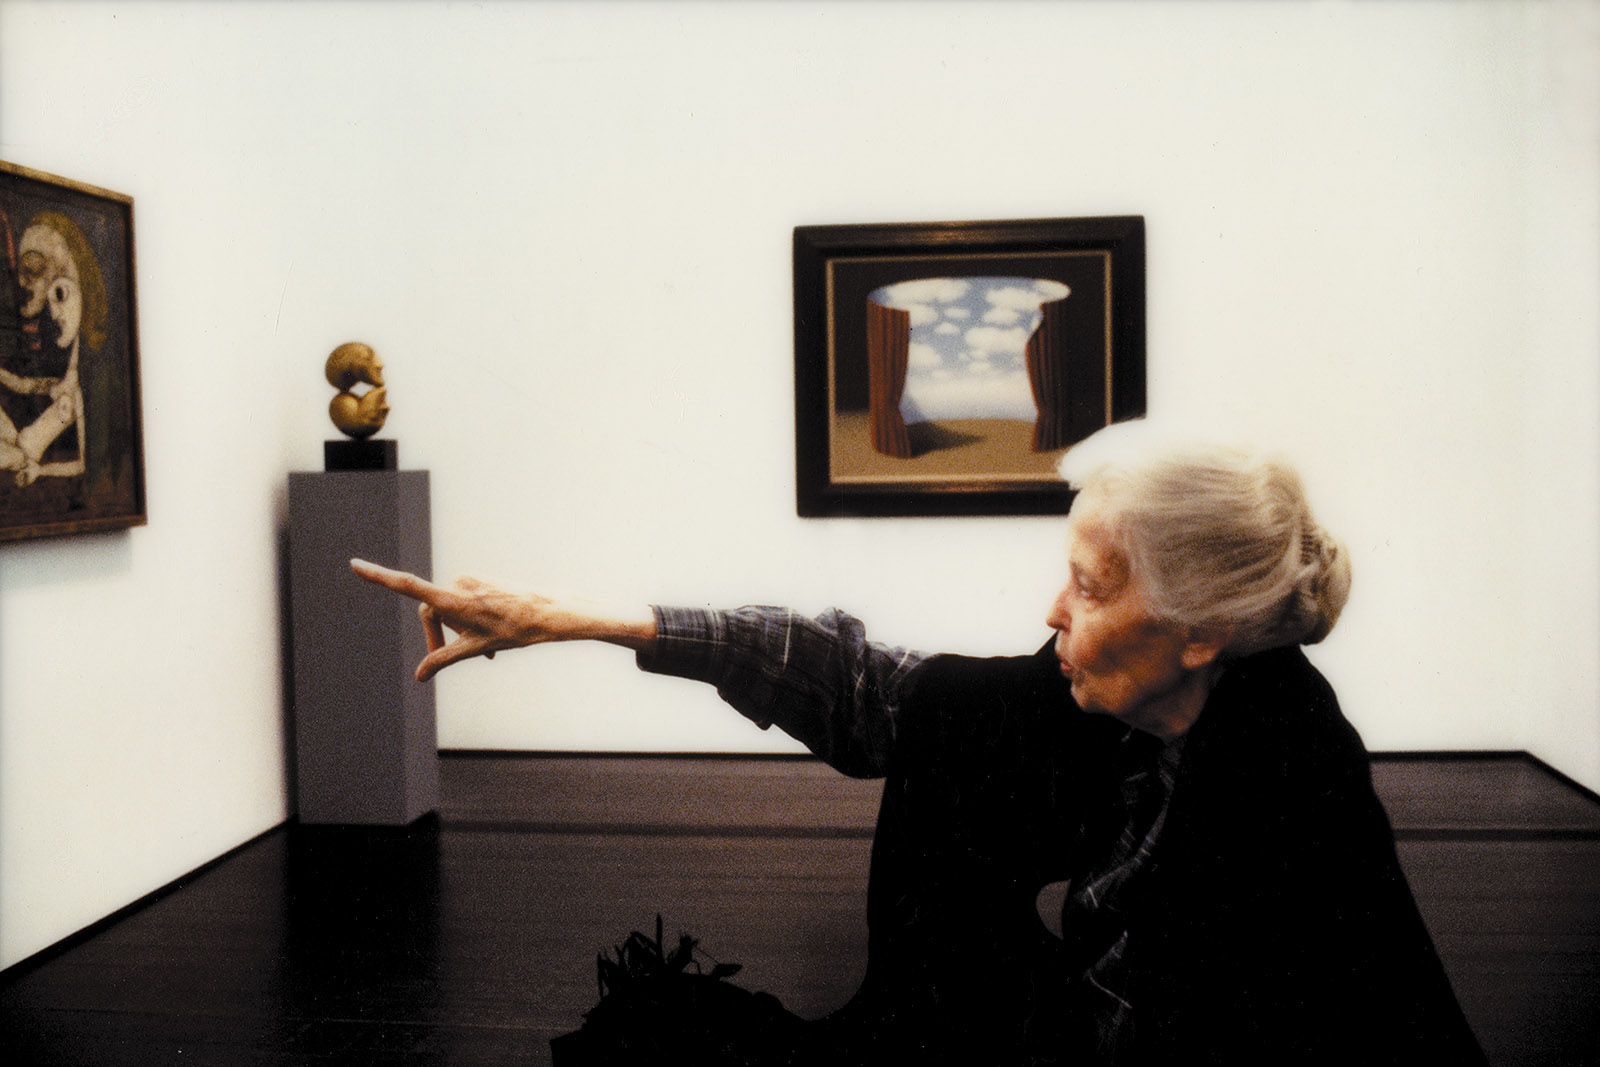 Dominique de Menil with artwork by Magritte and others, at the Menil Collection, Houston, 1990